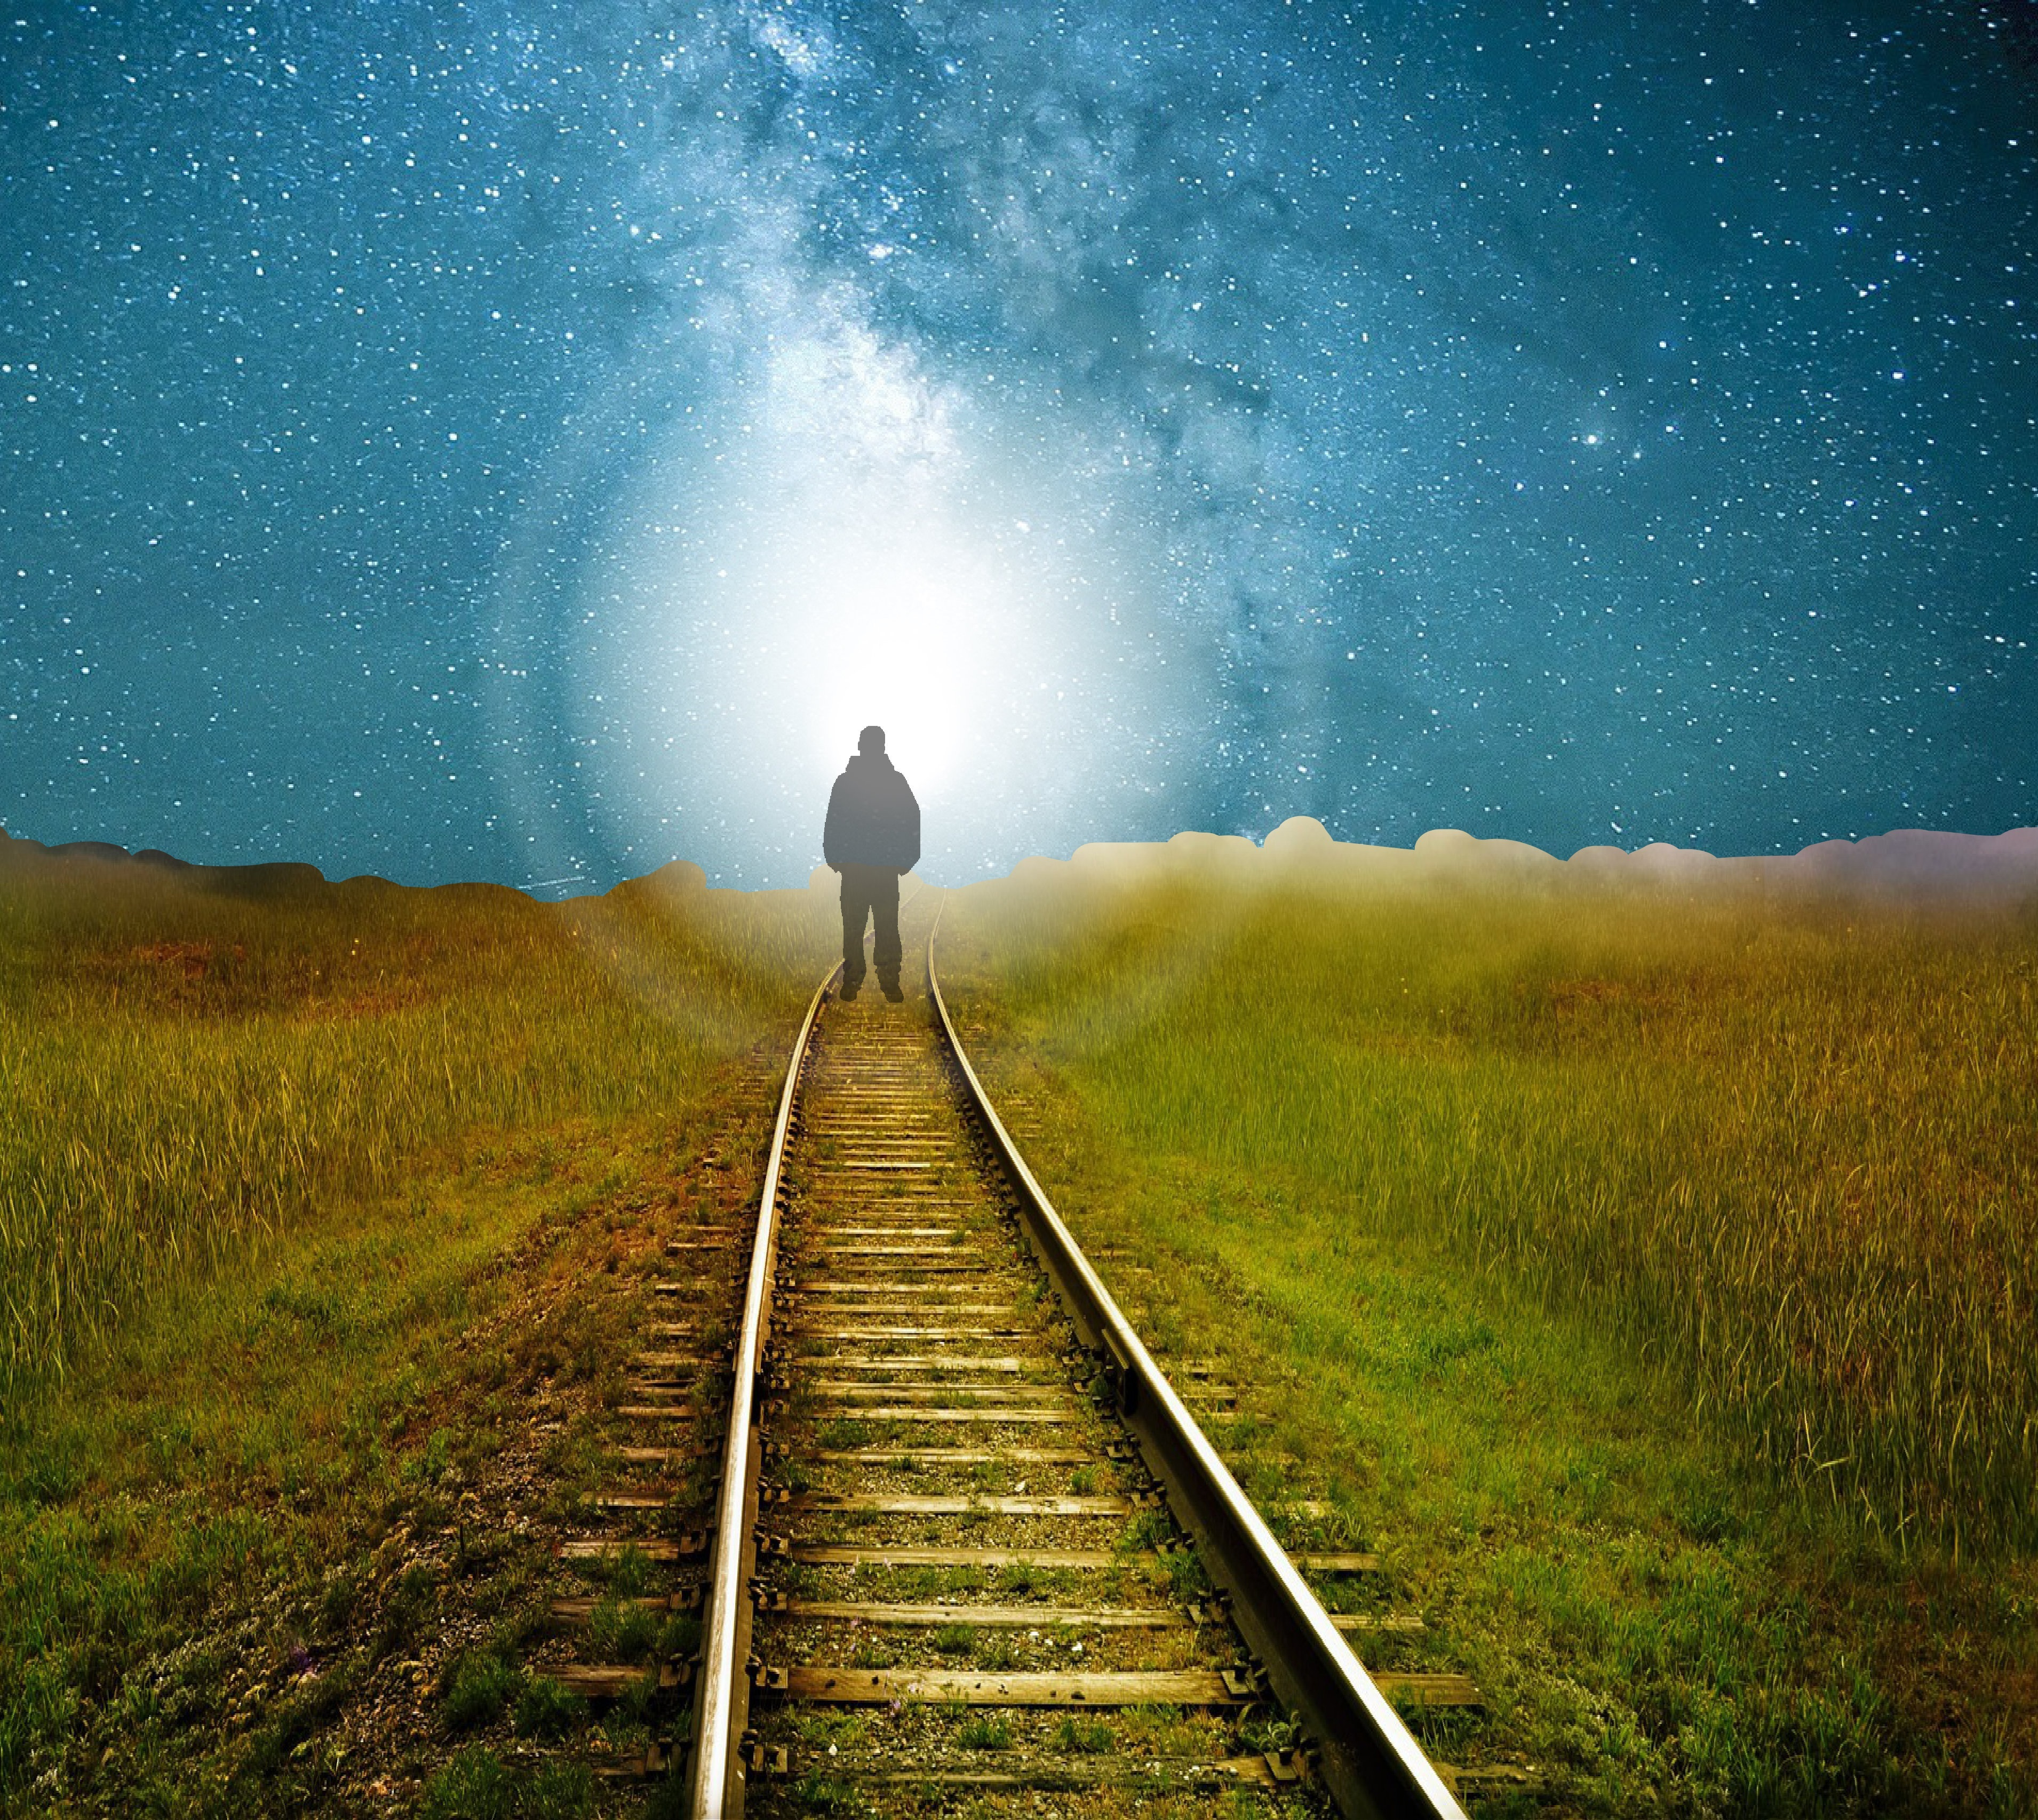 151585 free wallpaper 2160x3840 for phone, download images Art, Shine, Light, Silhouette, Road, Starry Sky, Railway 2160x3840 for mobile